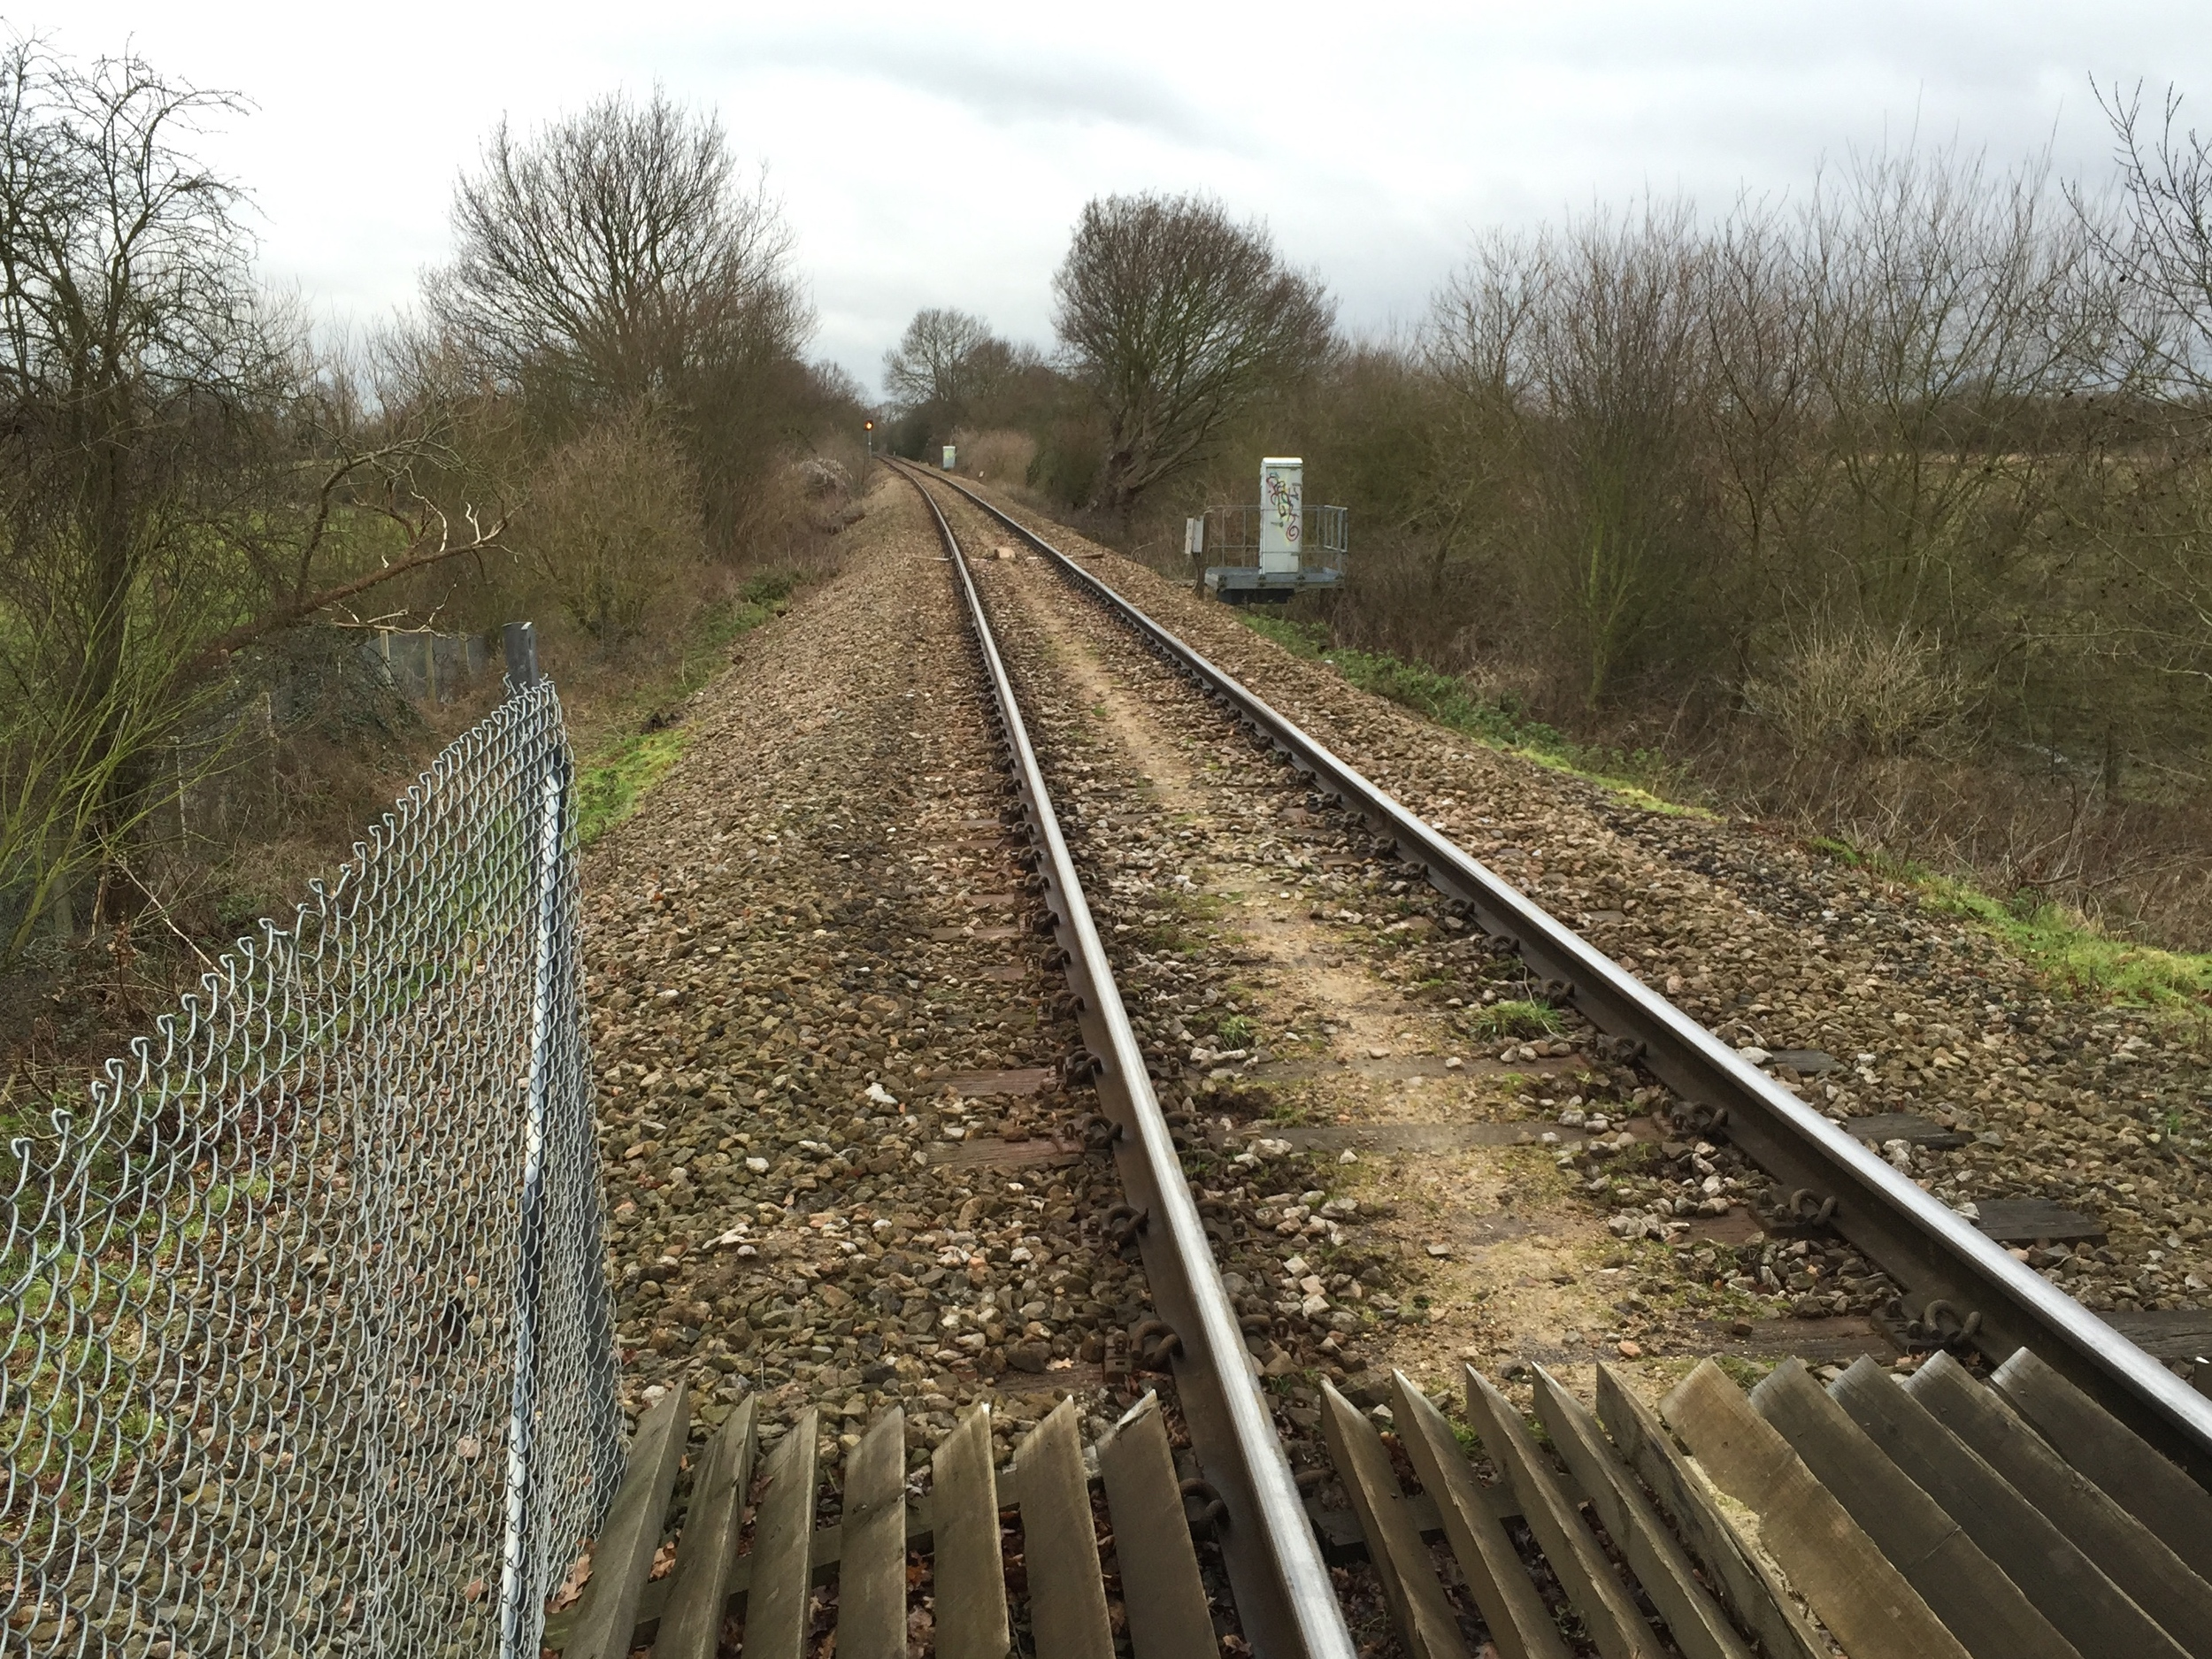 Plan your route carefully when crossing railway lines.